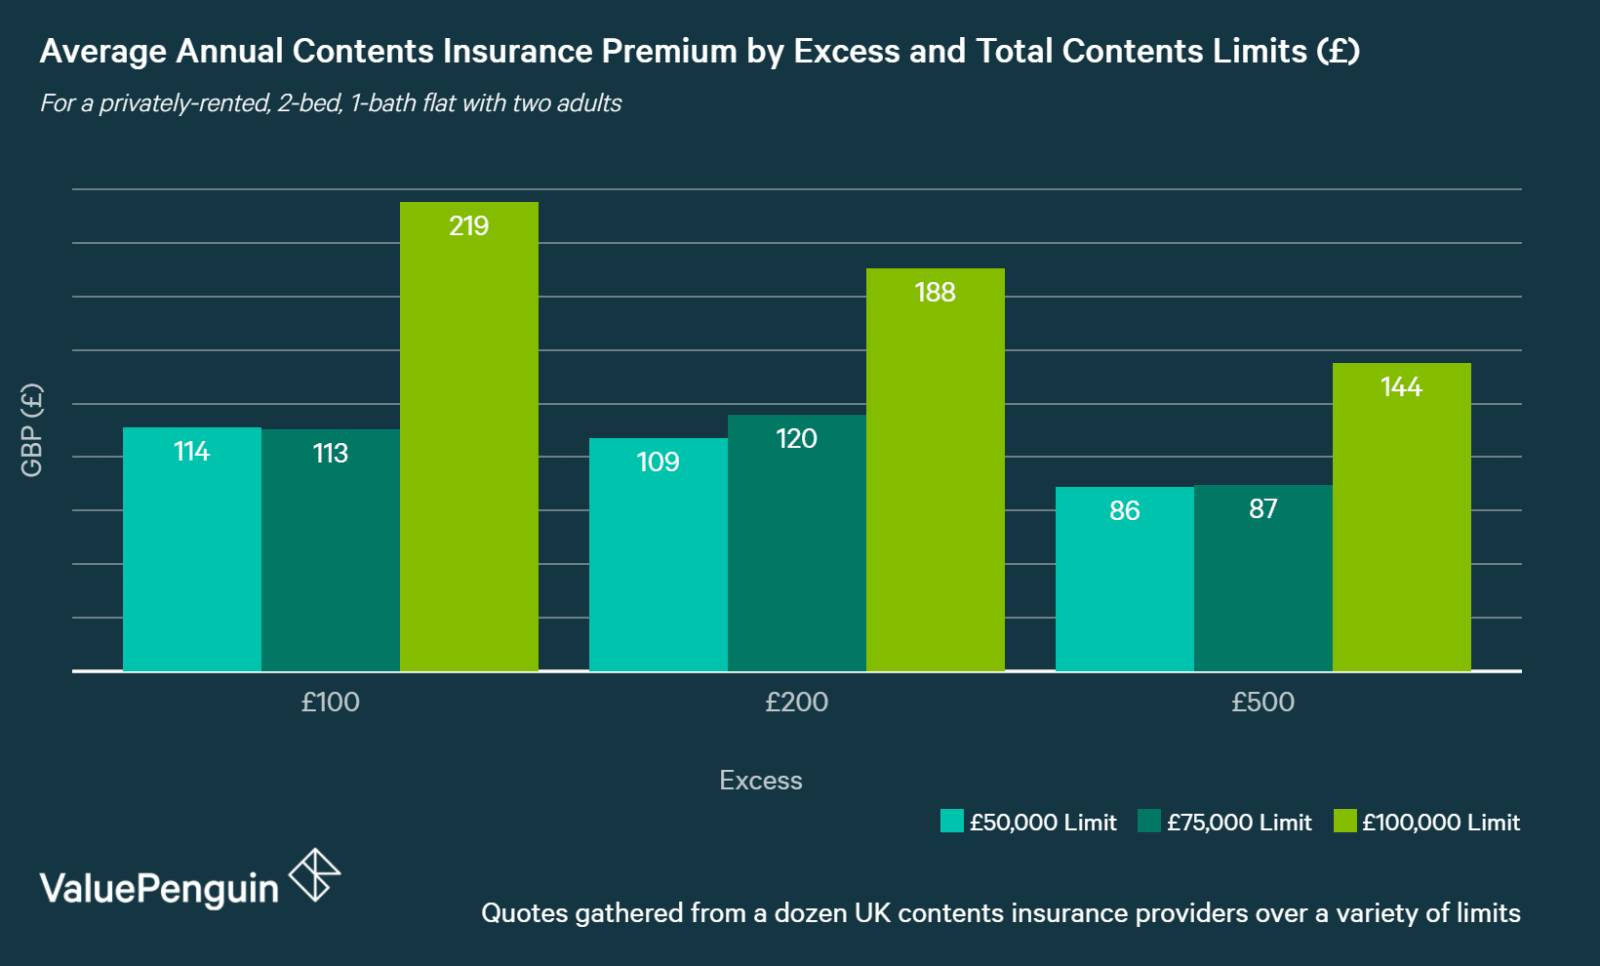 chart showing how UK contents insurance premiums change according to excess and contents limits